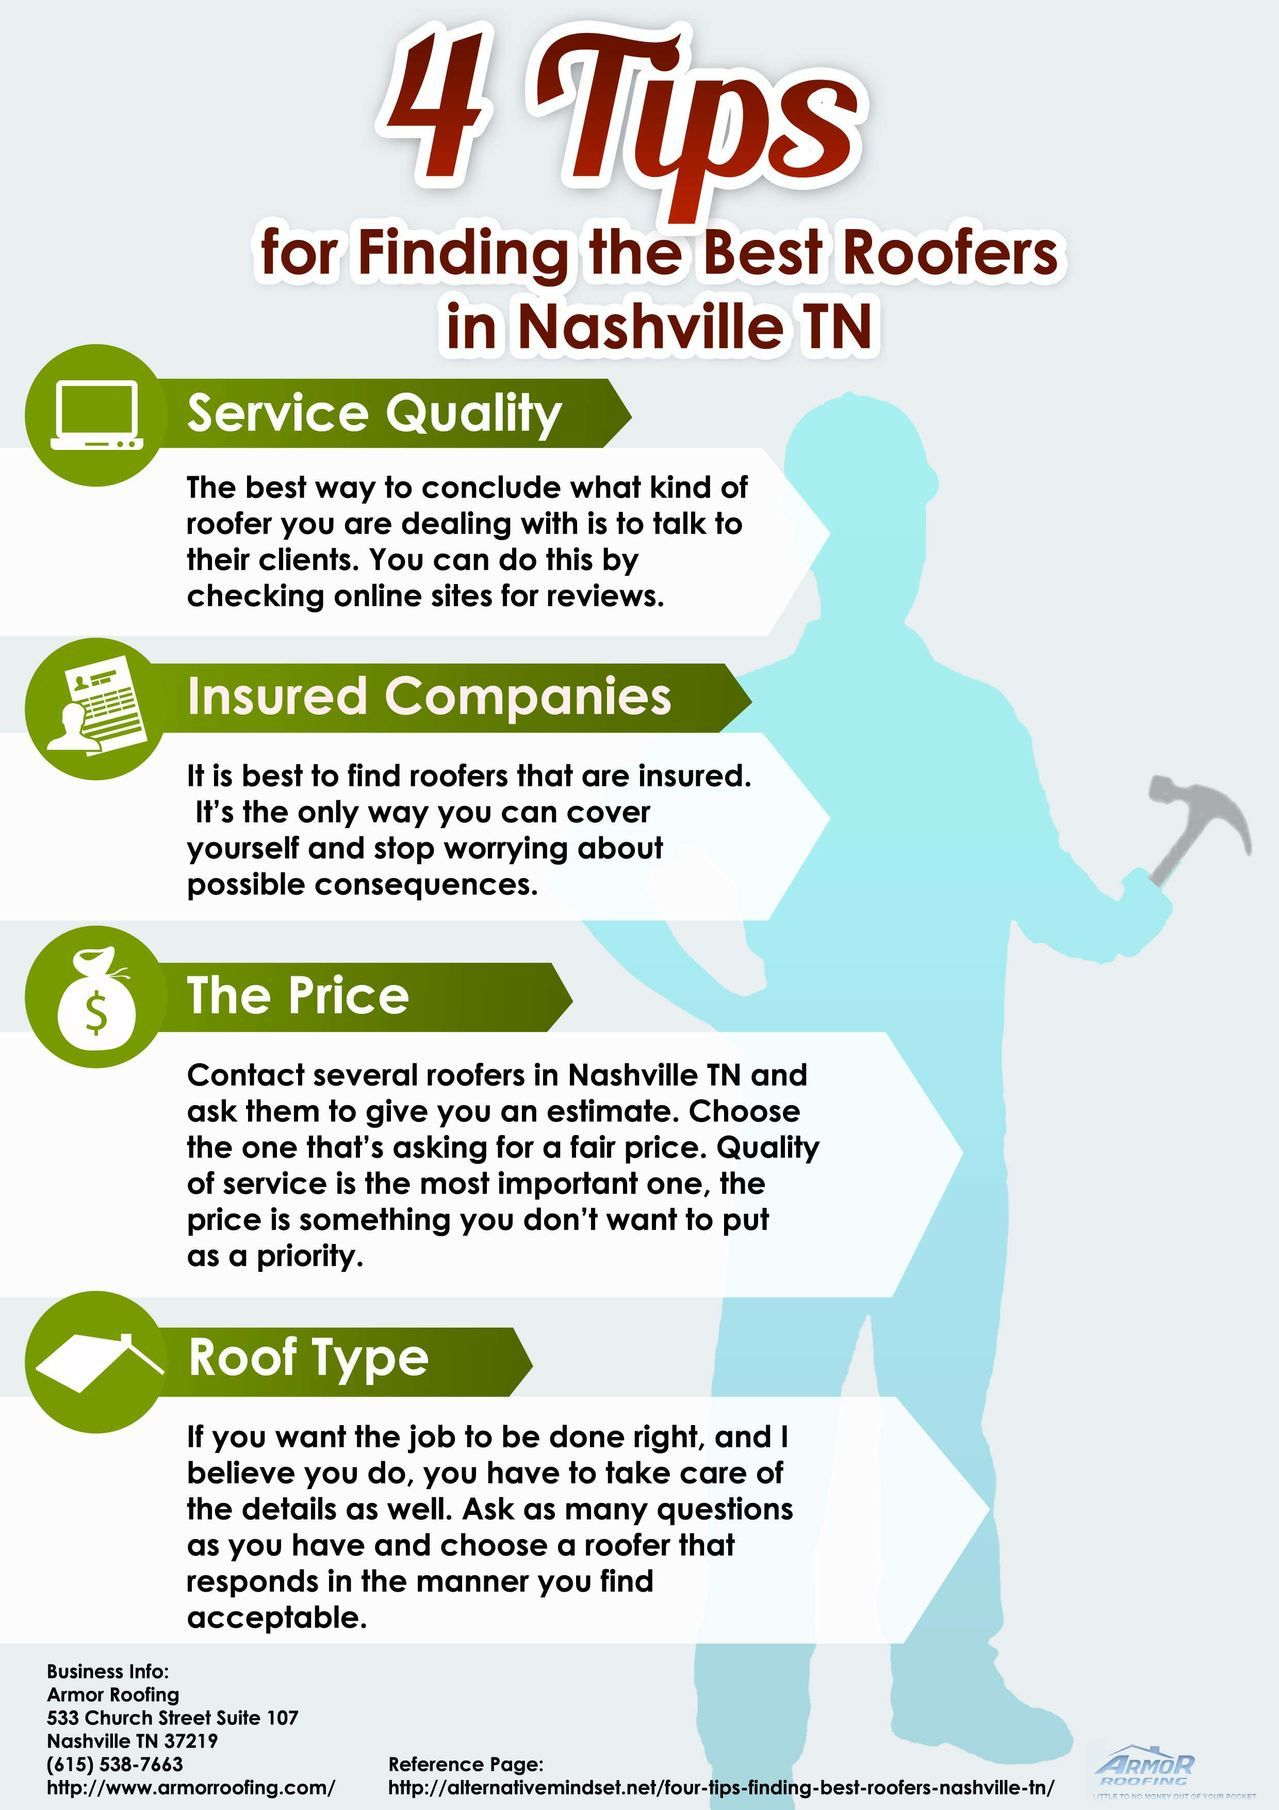 Four Tips for Finding the Best Roofers in Nashville TN  http://www.armorroofing.com/service-areas/ - Armor Roofing provides superior customer service and support on every Nashville Roofing job throughout the Tennessee area, and they have over 50 years of experience. Their Nashville roofers believe in a quality product at an excellent value.